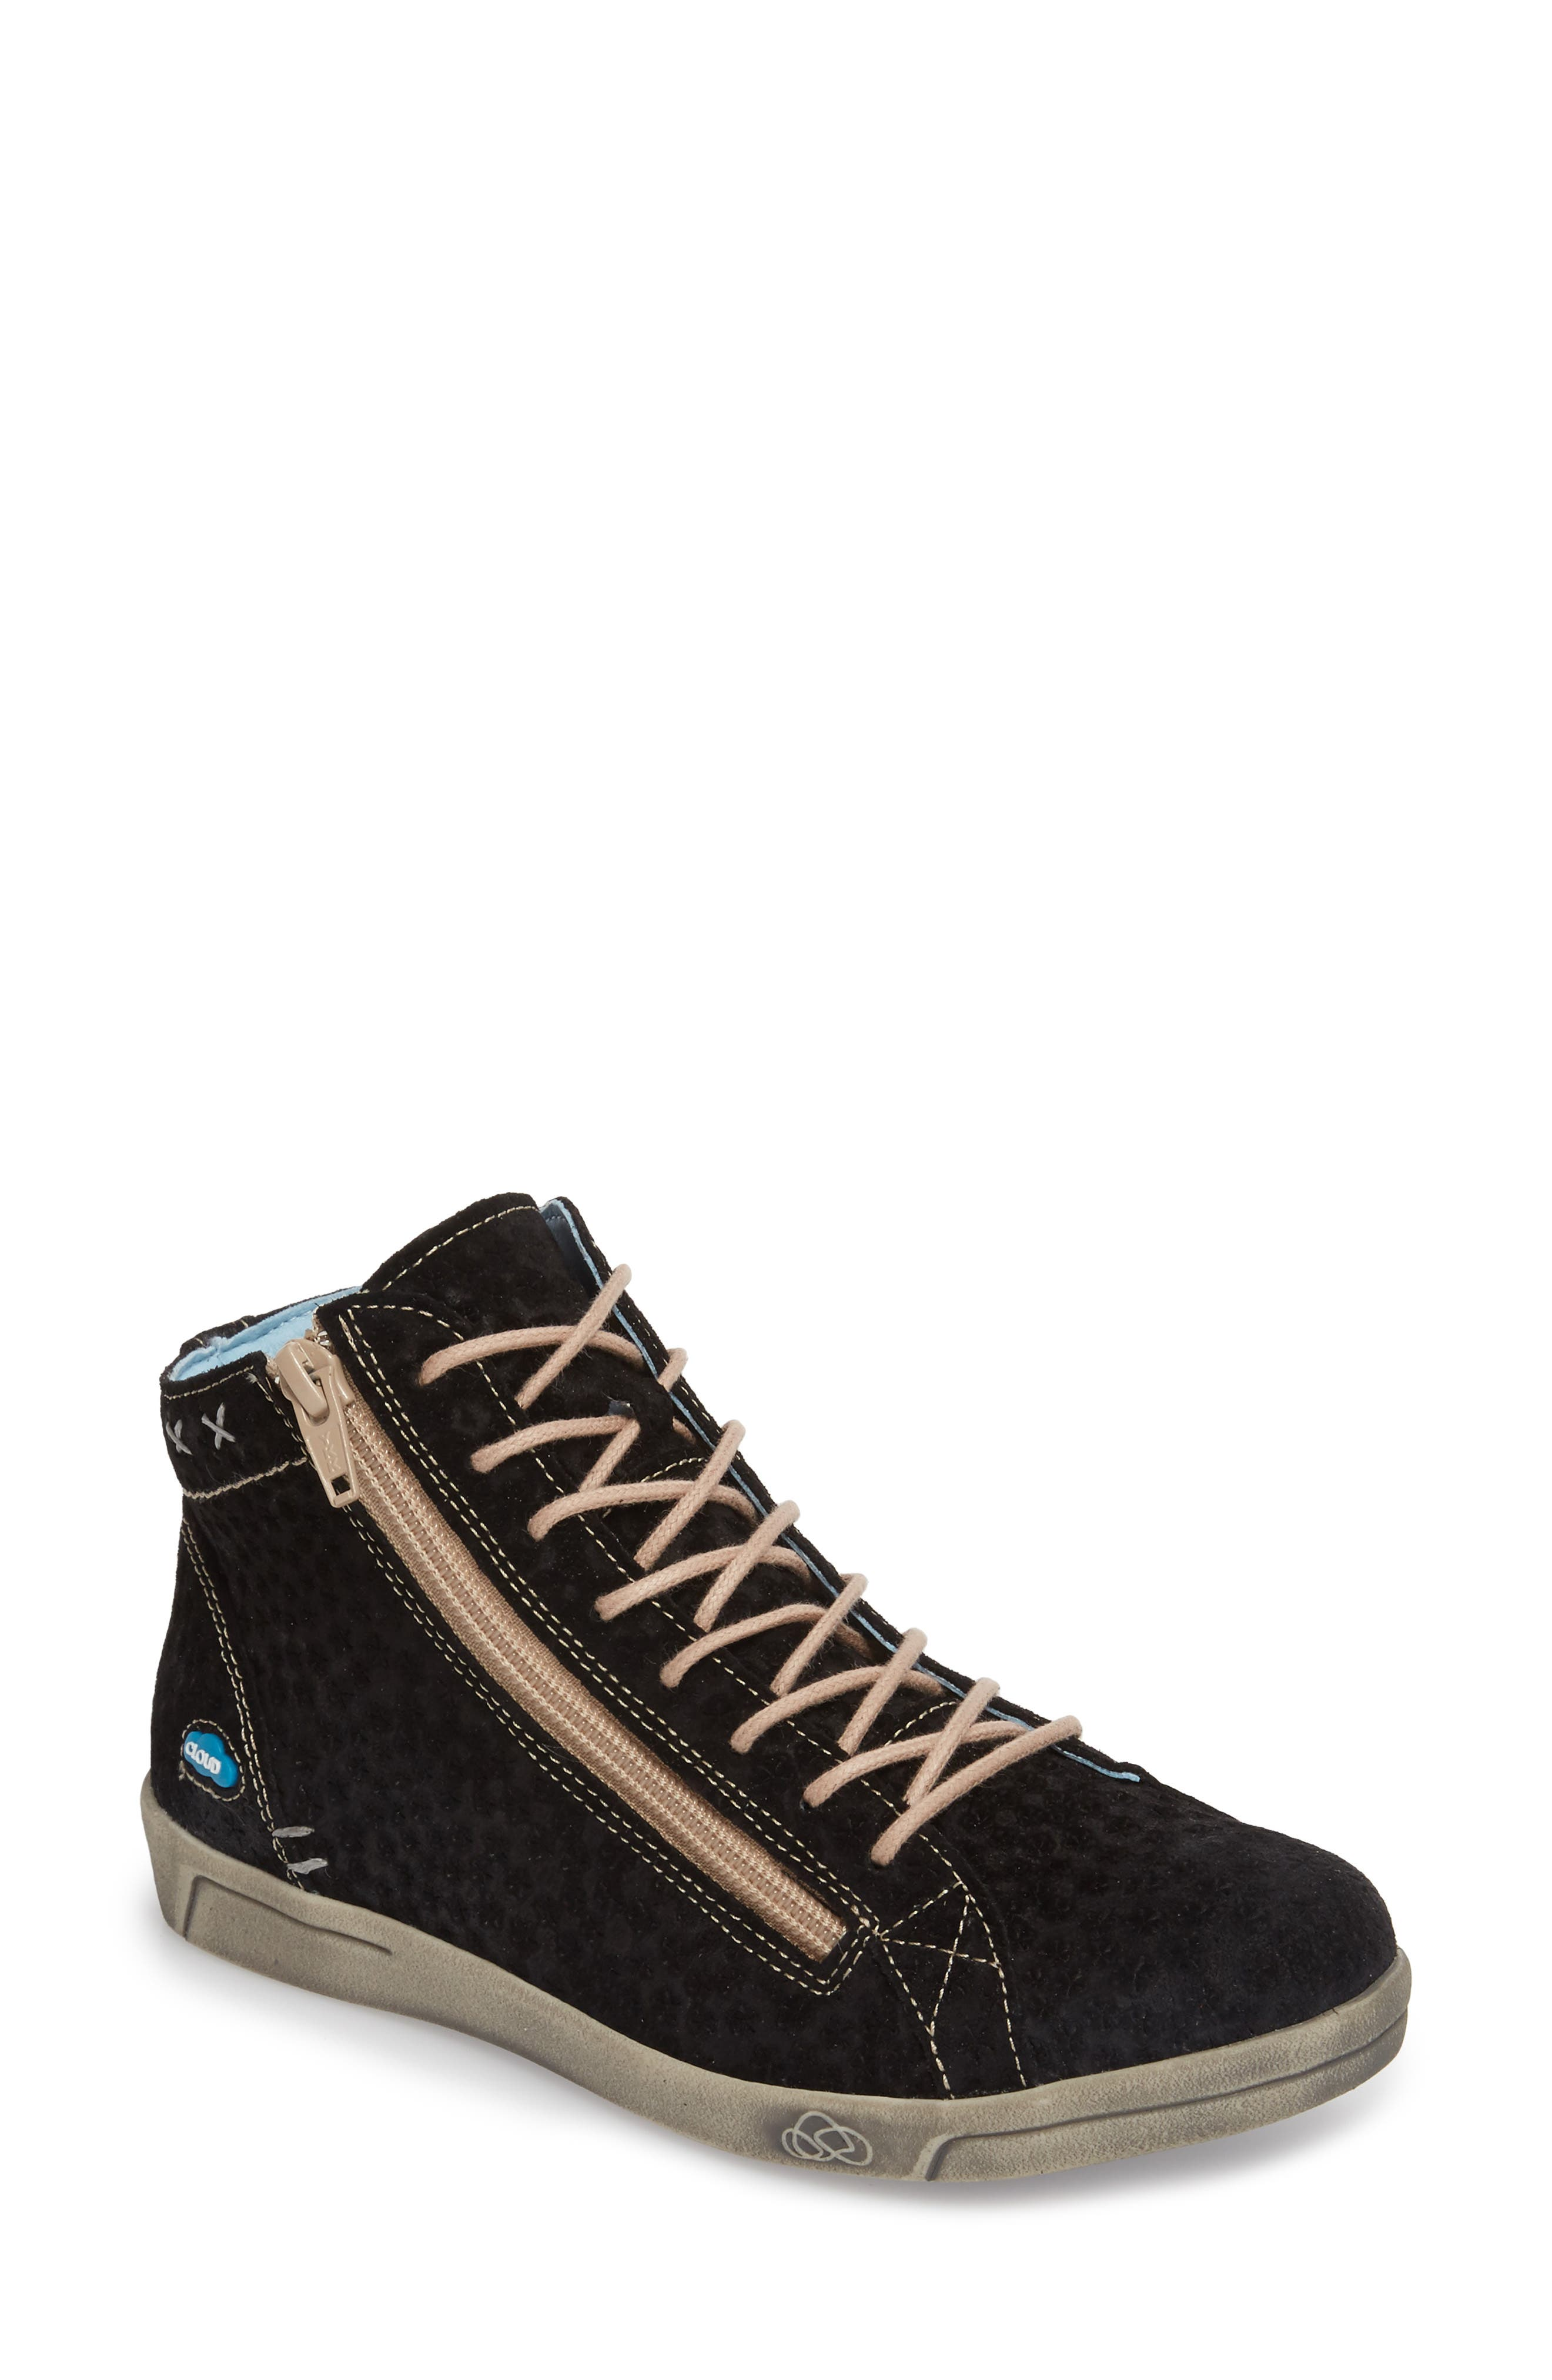 Aika Star Perforated High Top Sneaker,                         Main,                         color, BLACK LEATHER